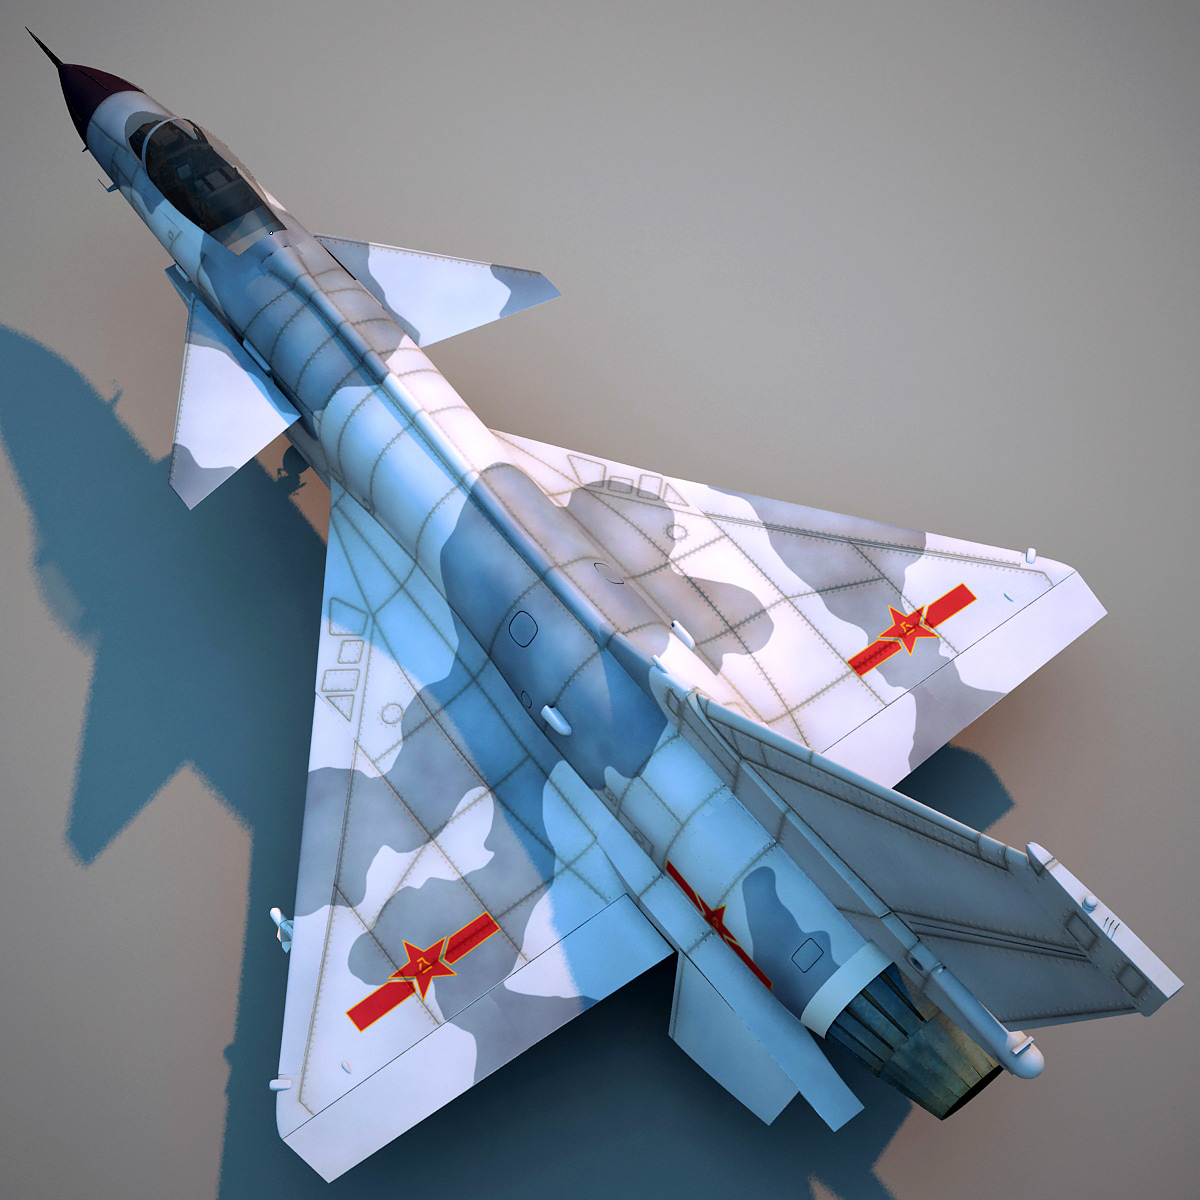 chengdu j 10 china fighter aircraft 3d c4d